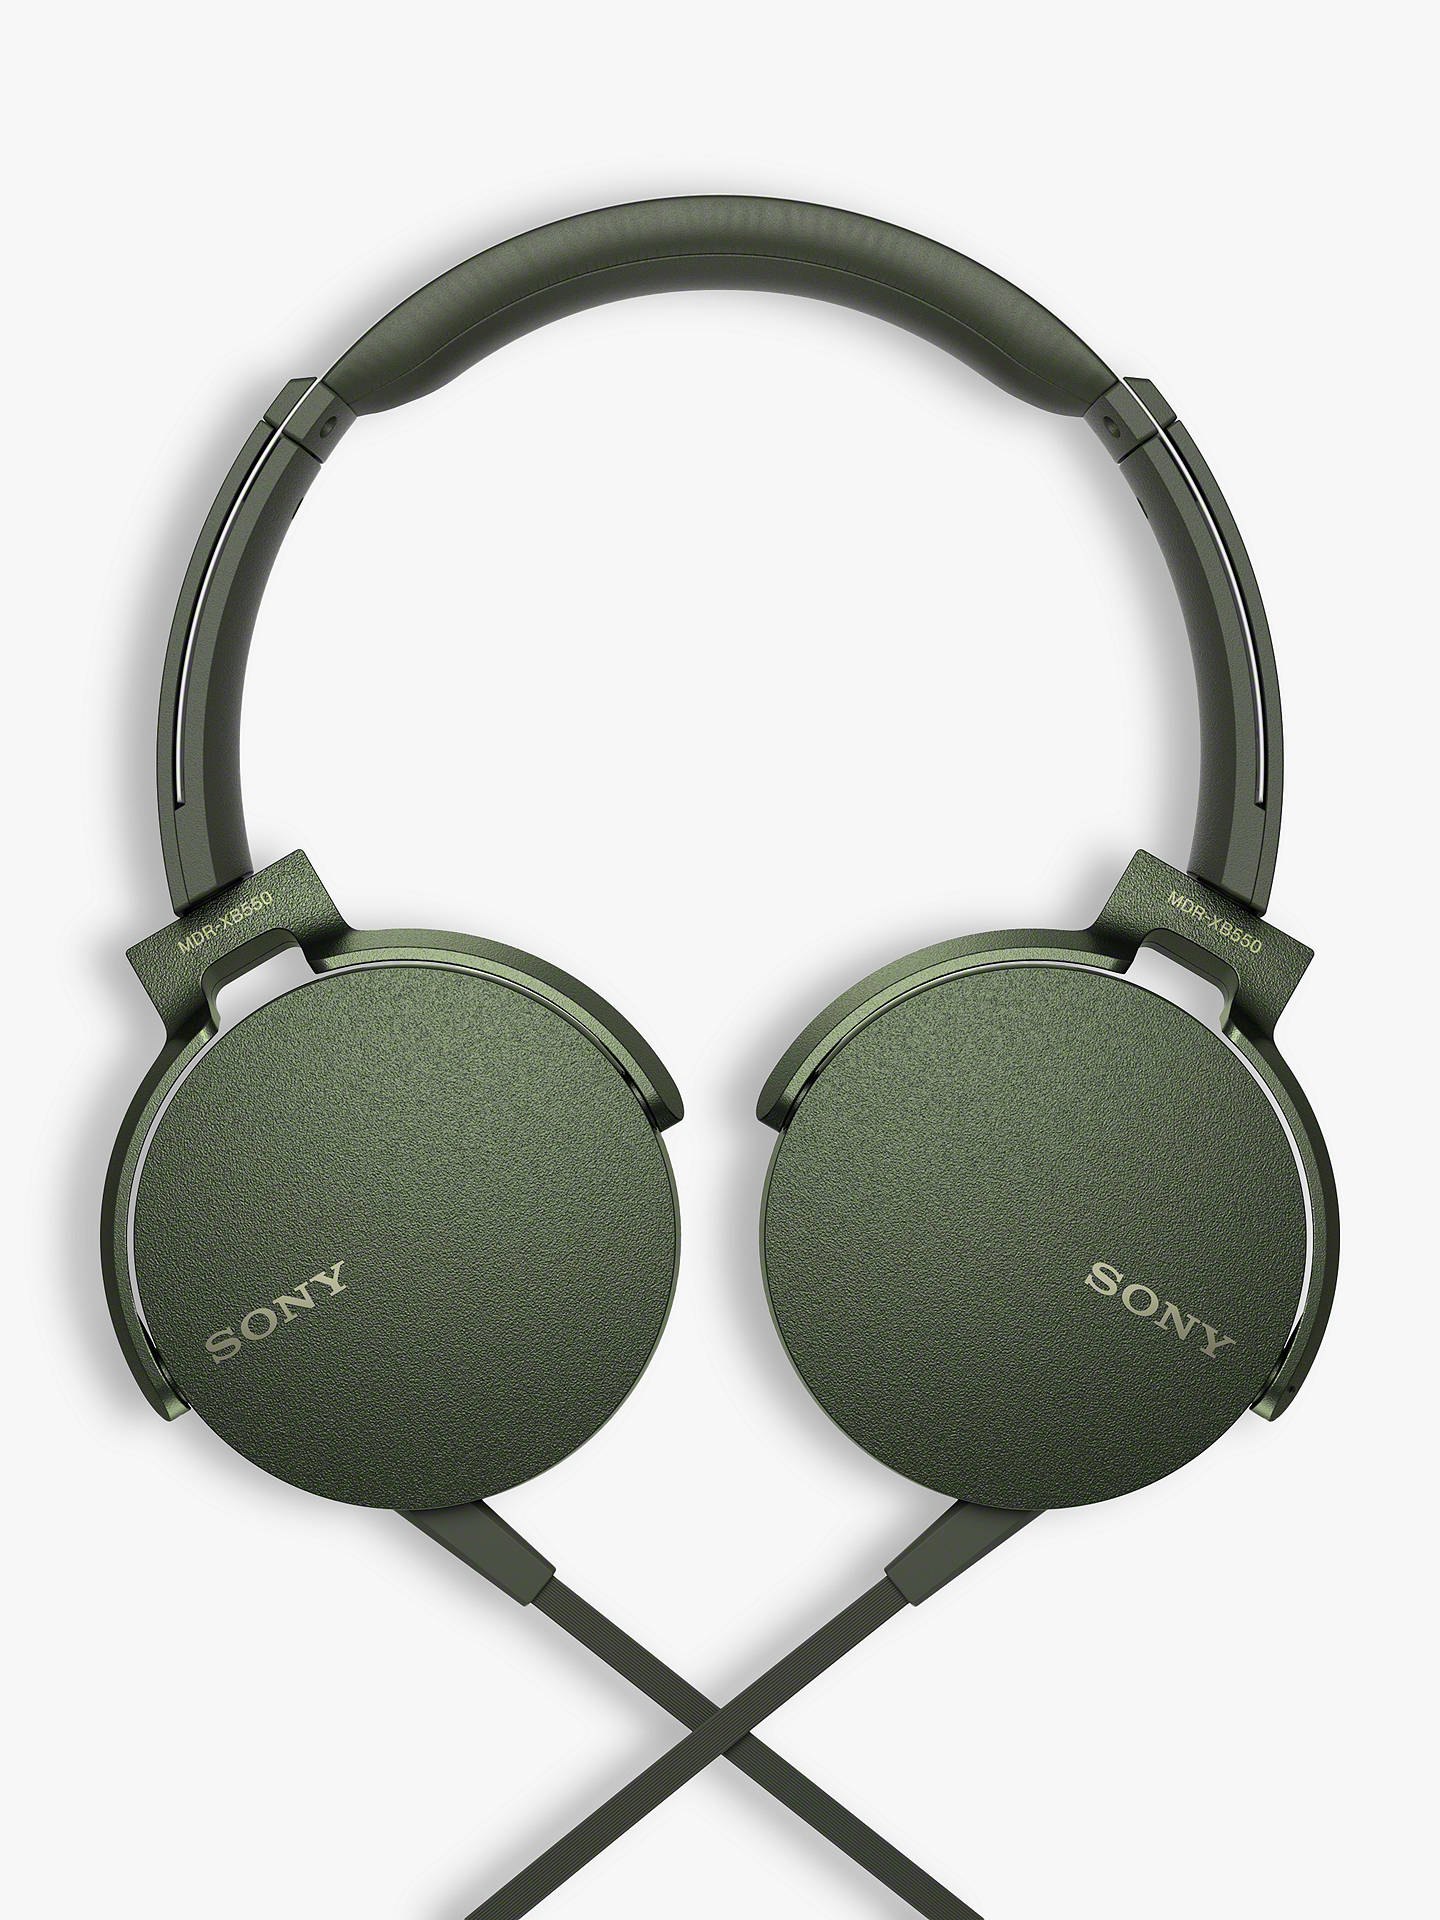 BuySony MDR-XB550AP Extra Bass On-Ear Headphones with Mic/Remote, Green Online at johnlewis.com